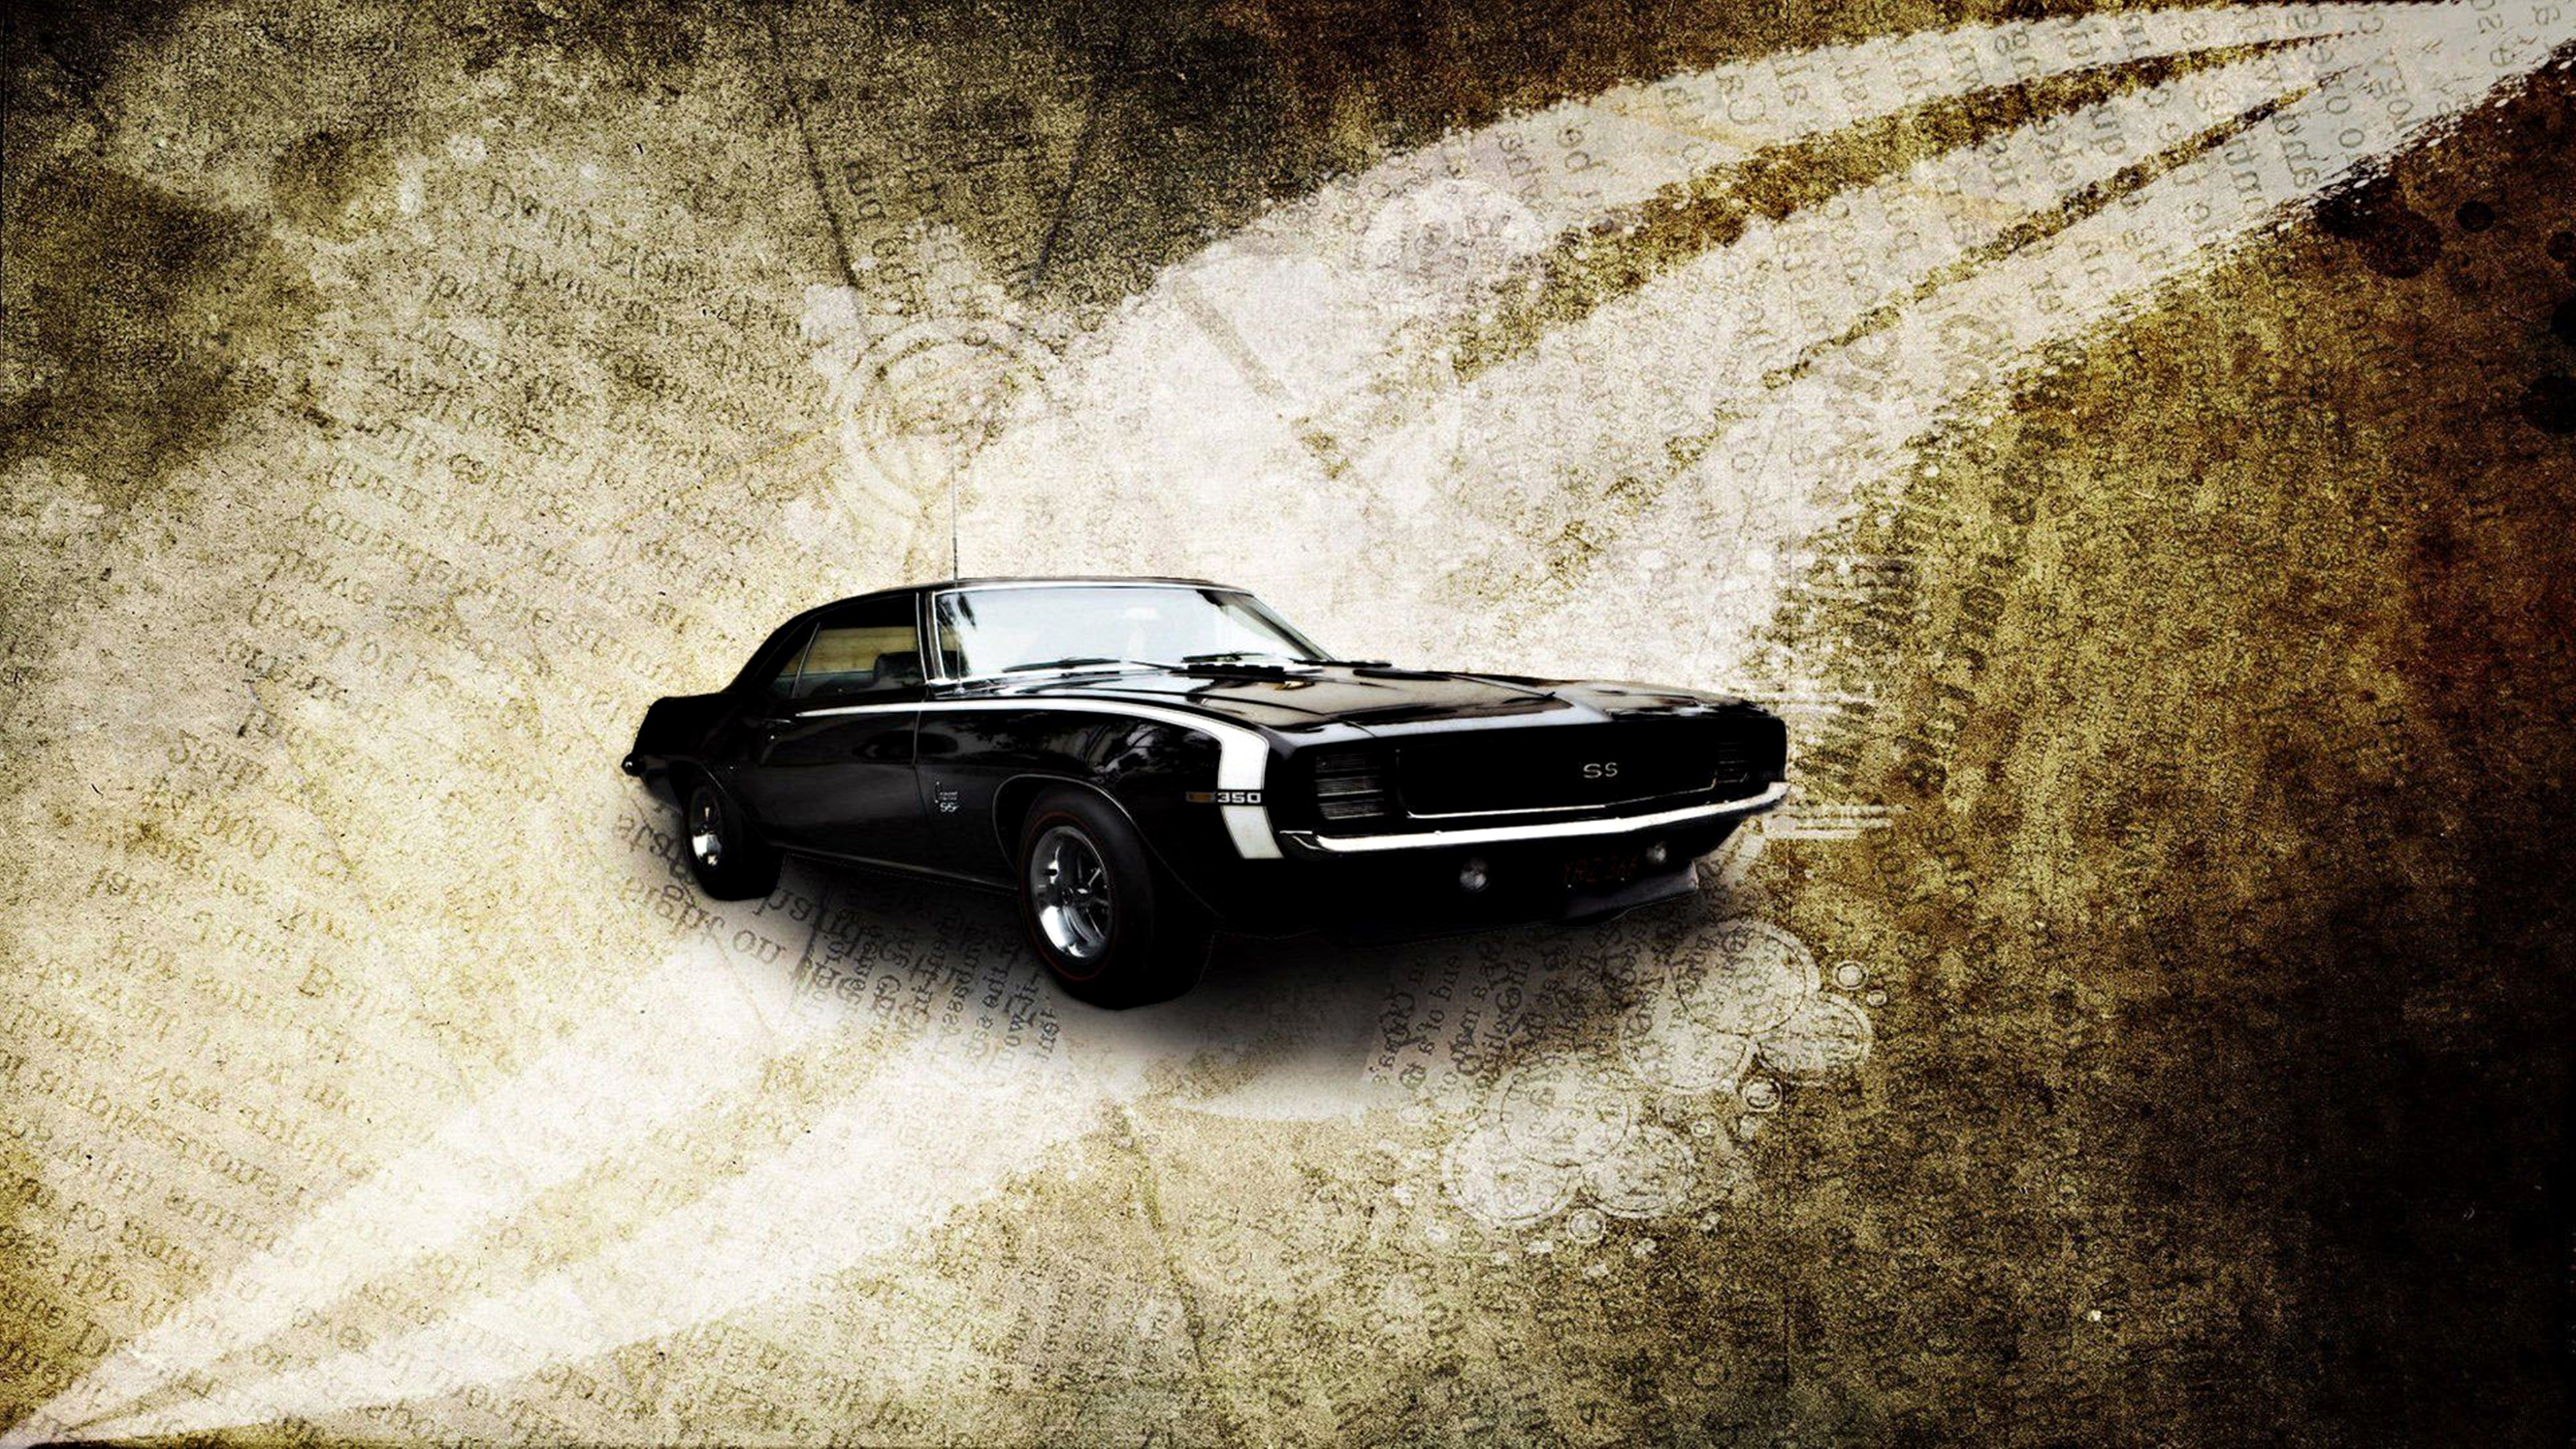 1967 Chevrolet Camaro SS 4k Ultra HD Wallpaper and ...